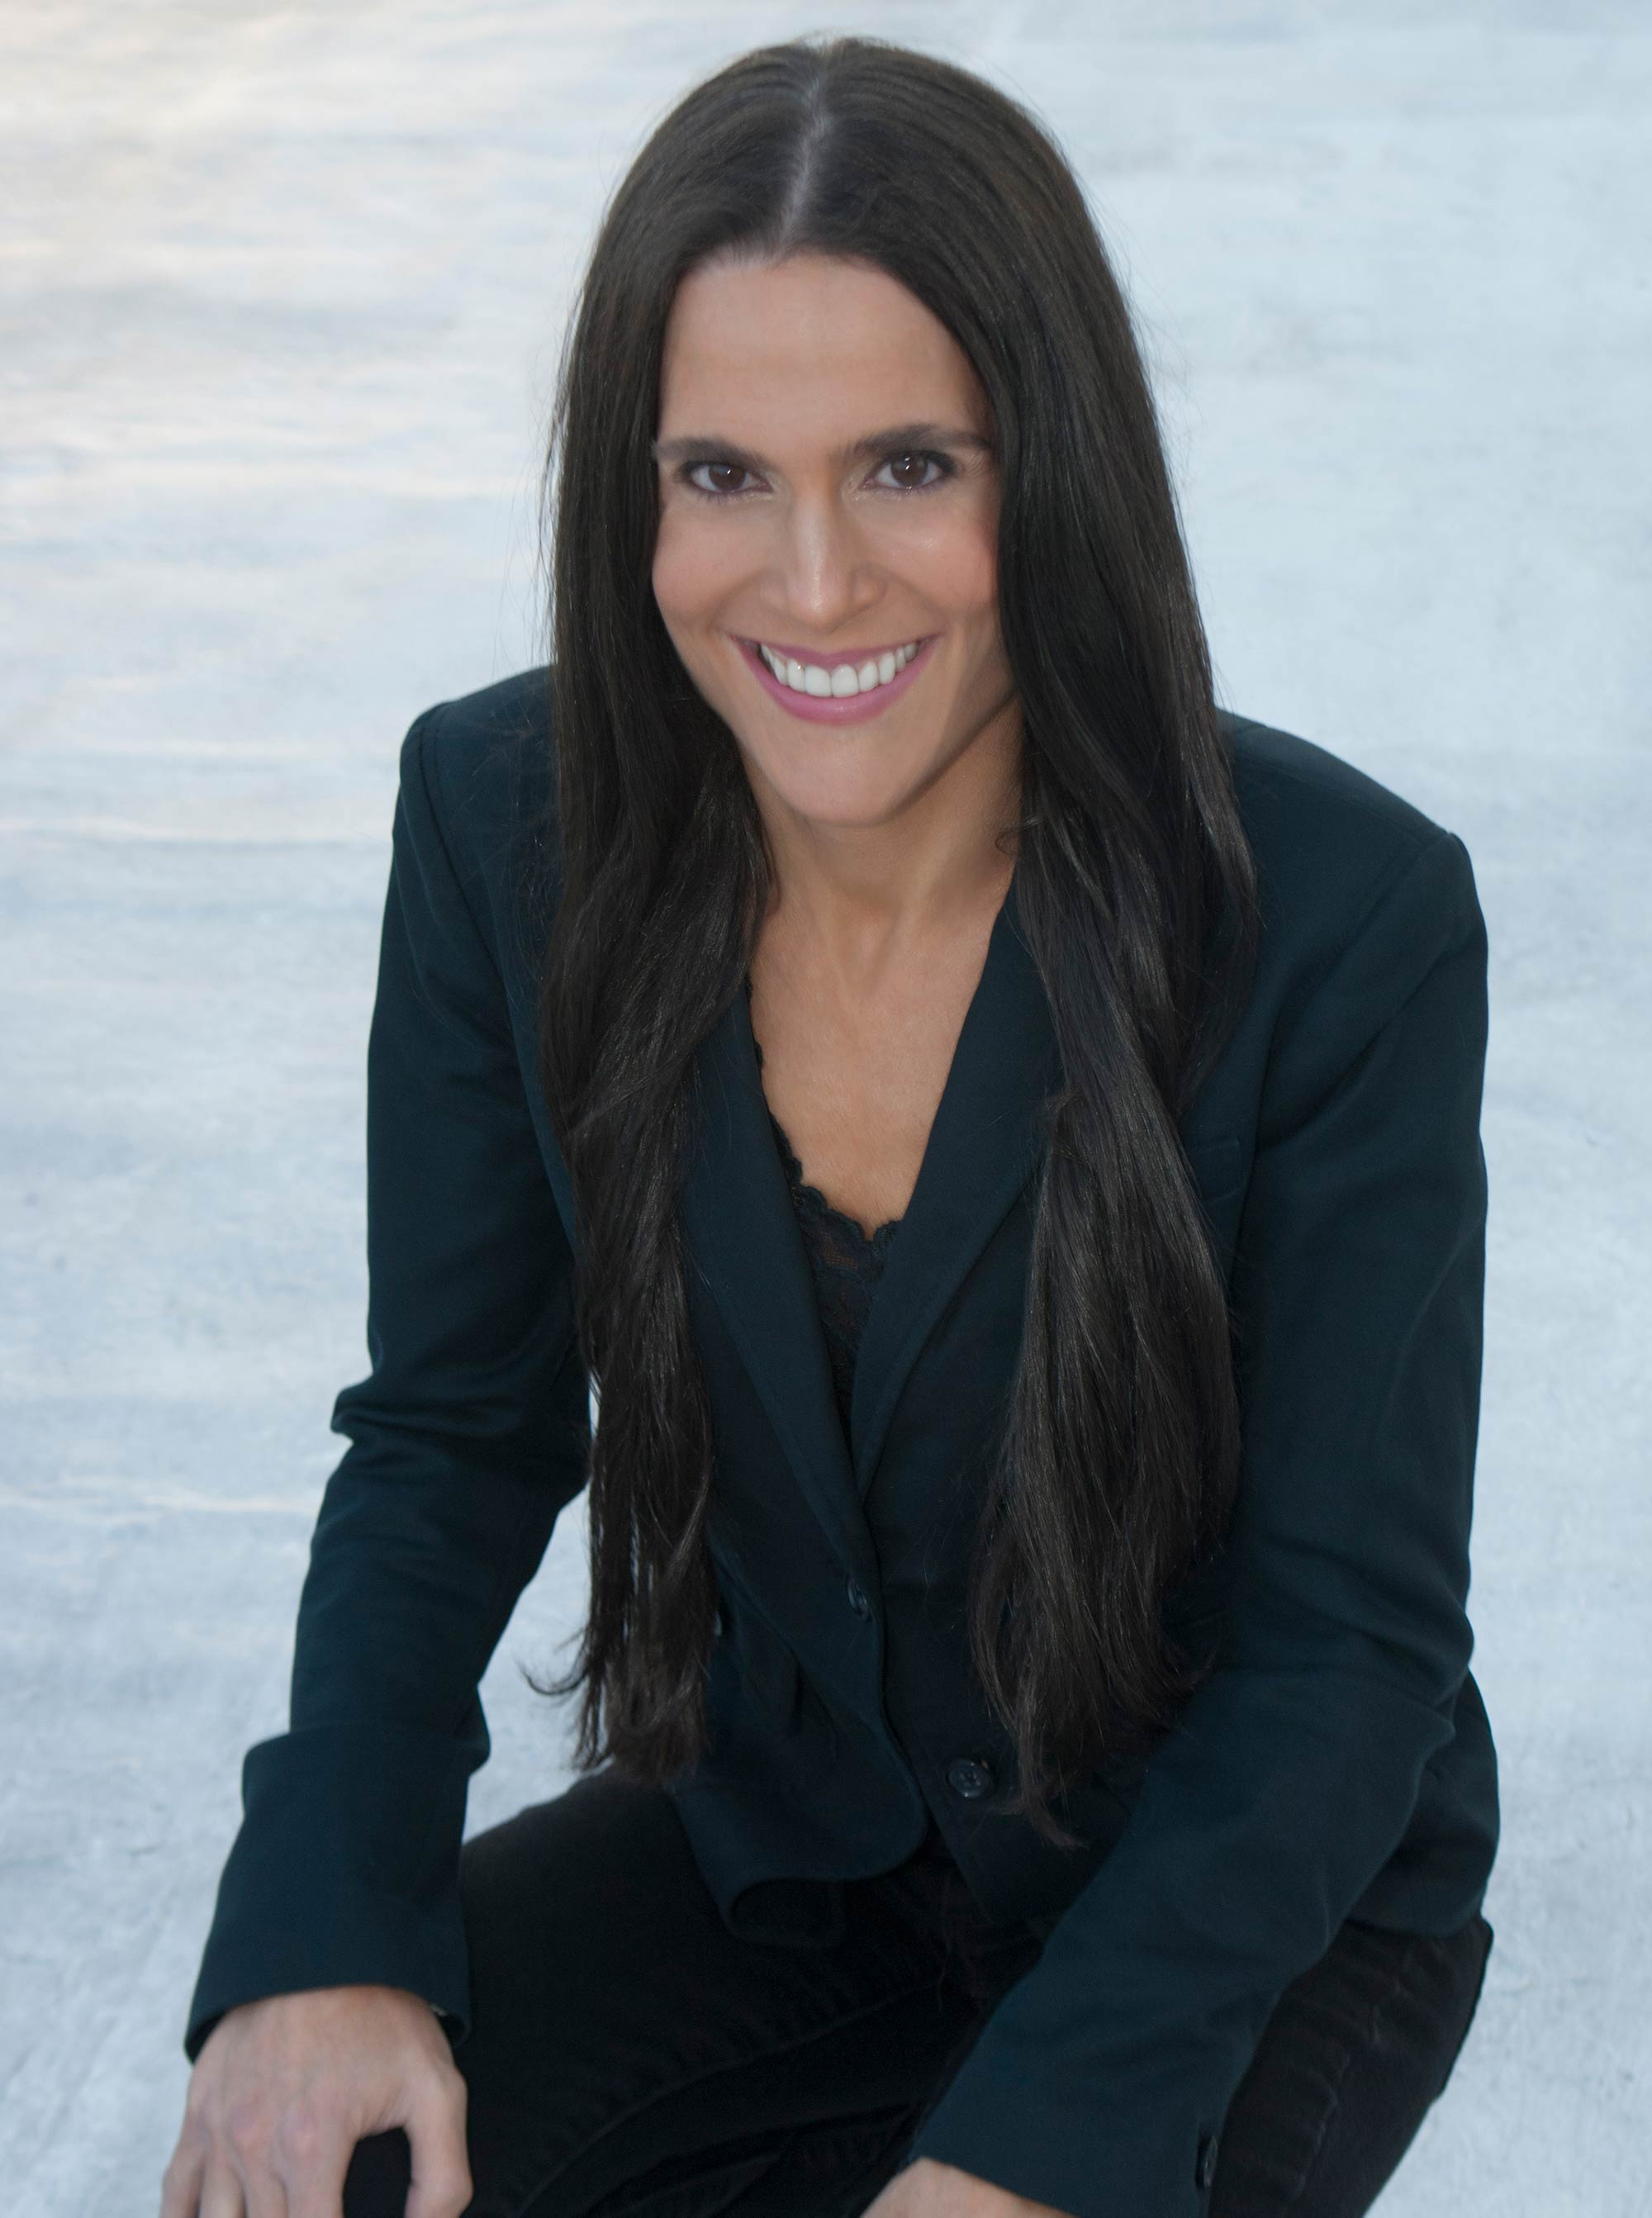 Headshot of Dr. Alison Mitzner in black suit, a New York City-based board certified pediatrician, mom, fitness expert, and media contributor